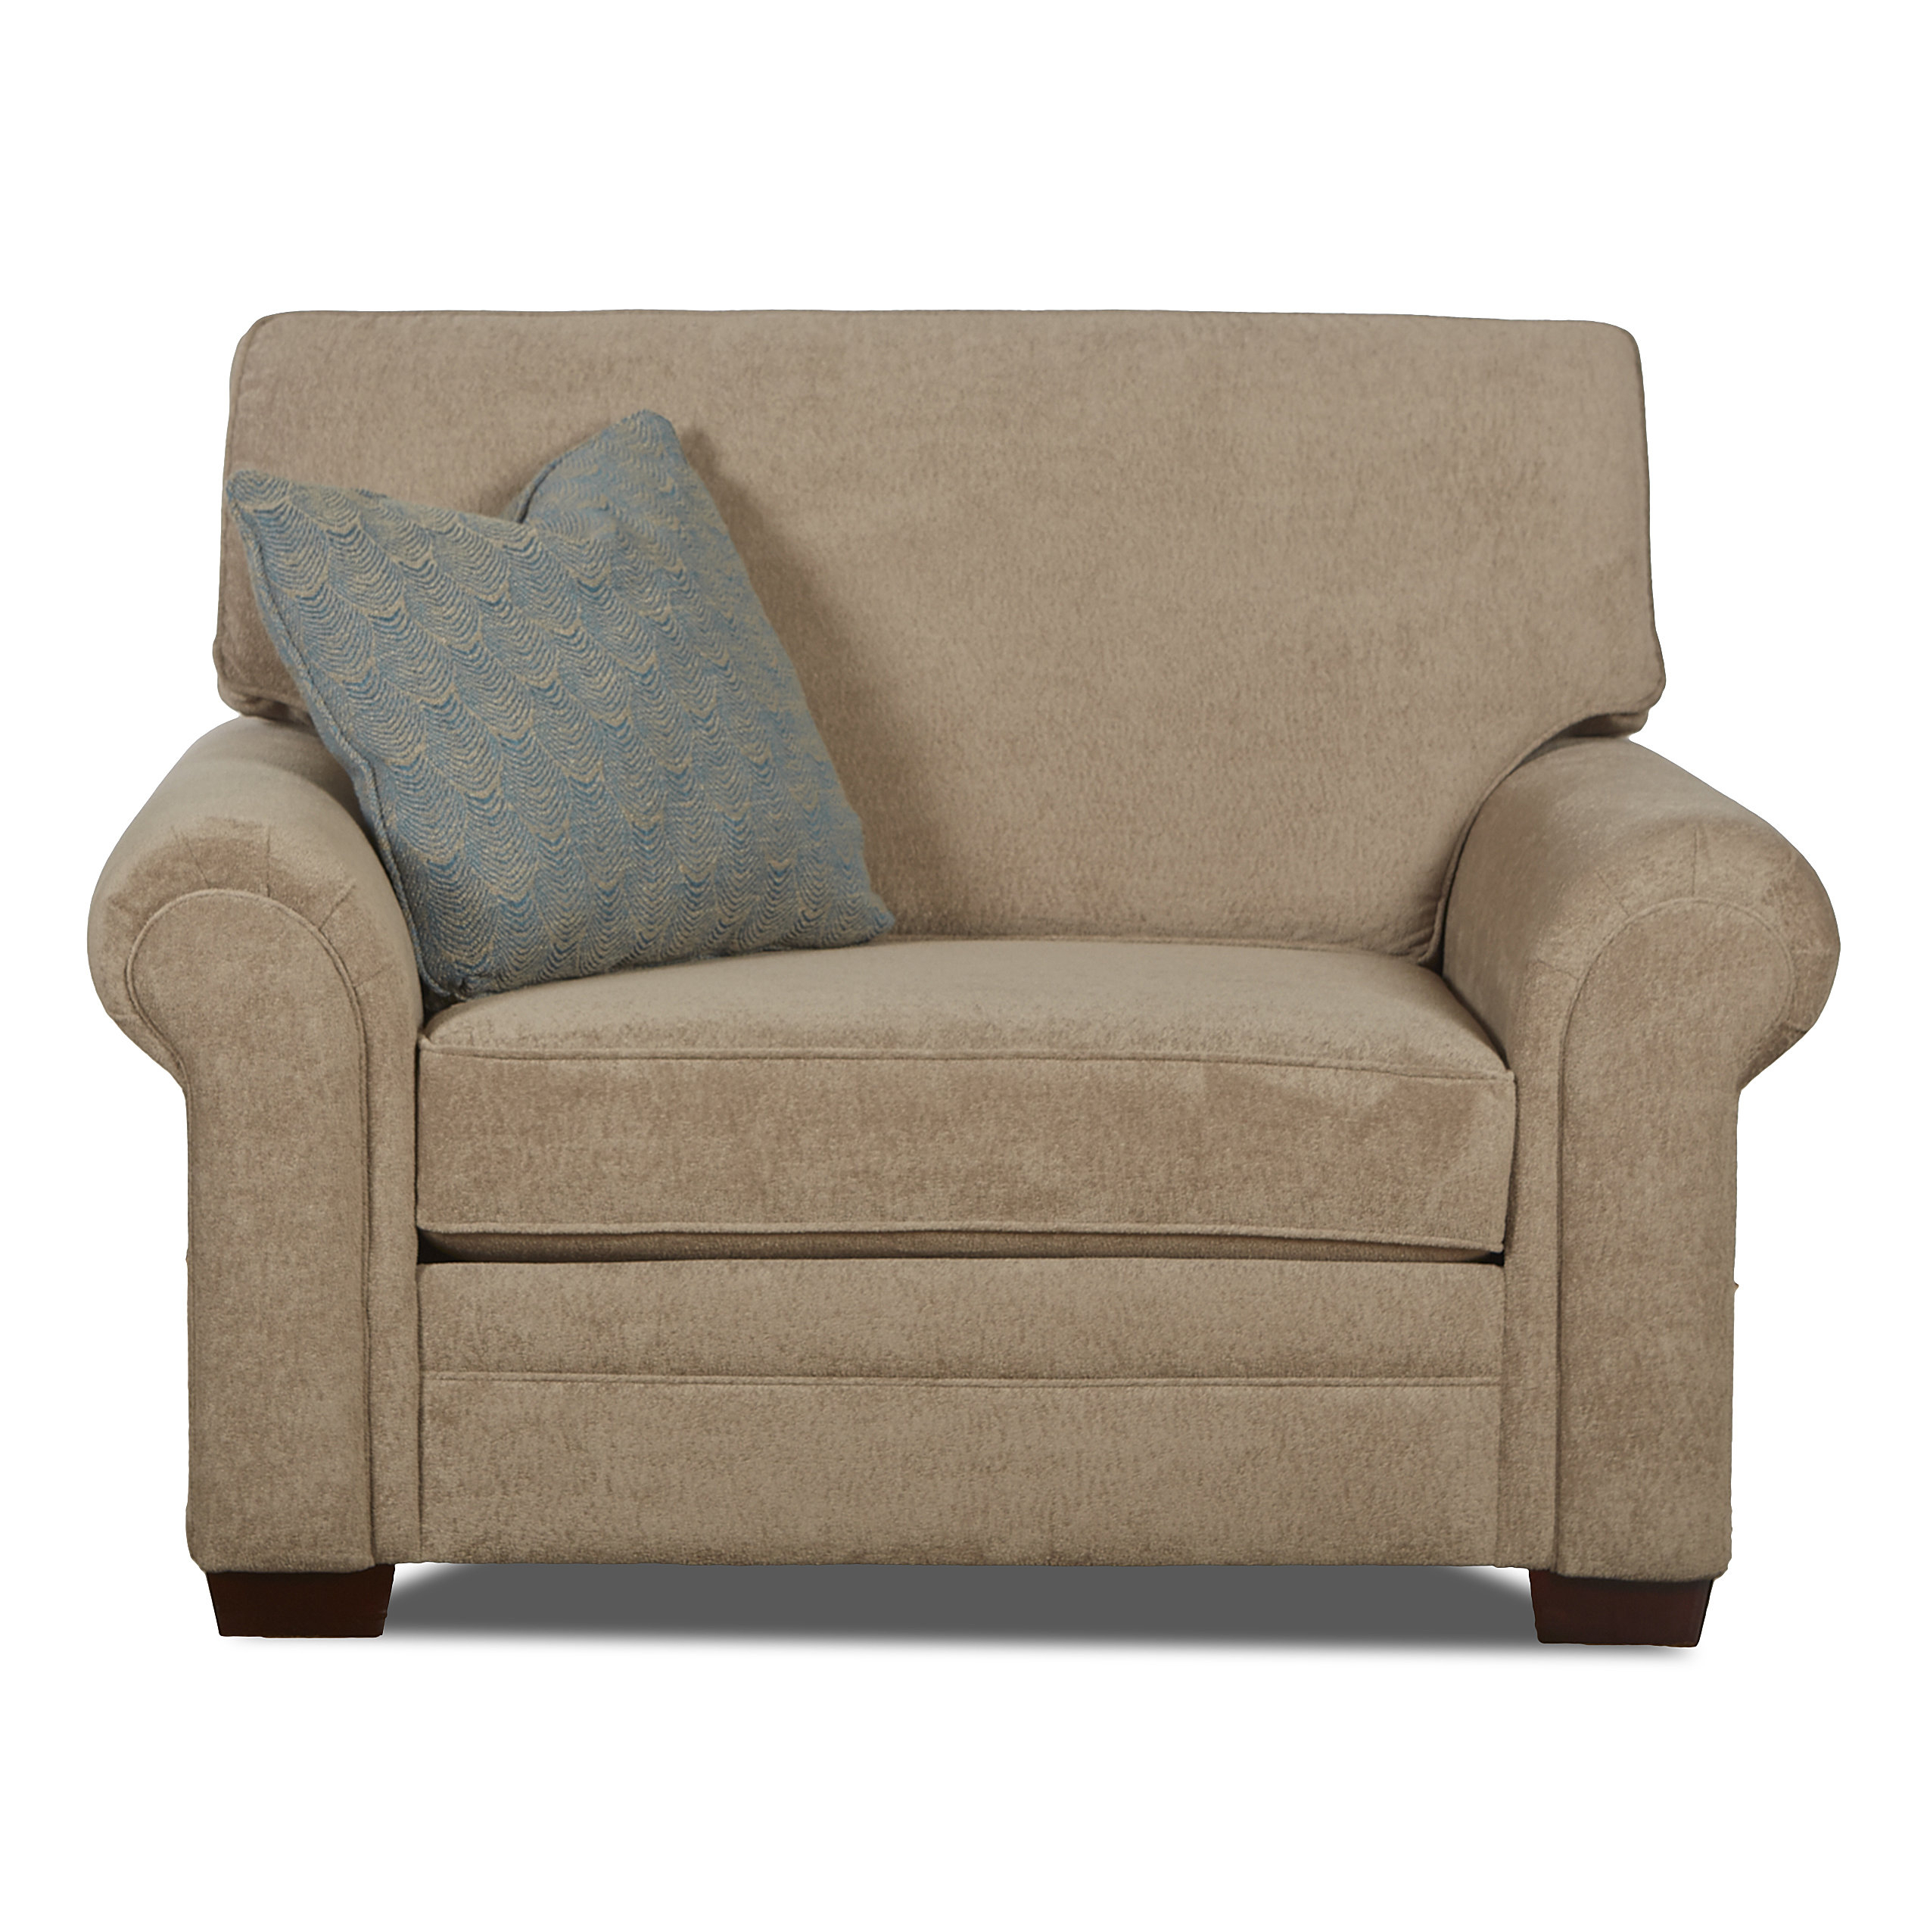 Klaussner Furniture Surrey Chair And A Half | Wayfair With Regard To Bailey Angled Track Arm Swivel Gliders (Image 13 of 20)